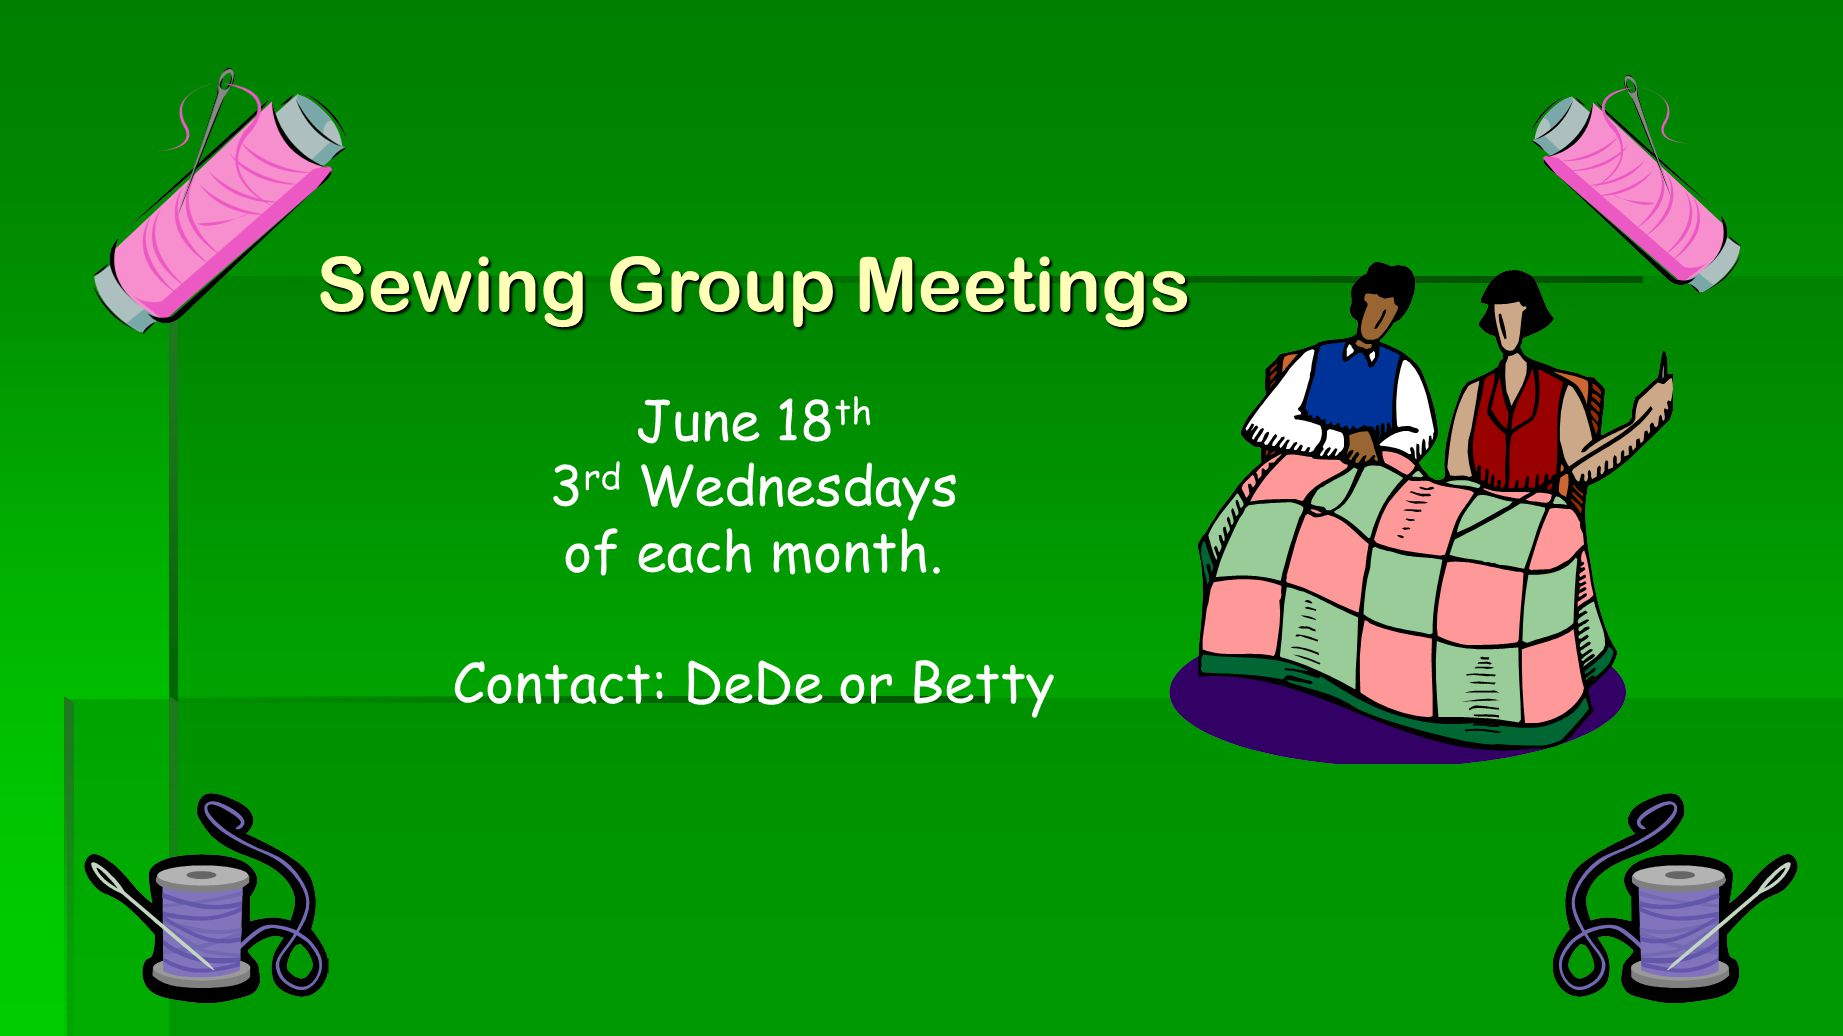 Sewing Group Meetings June 18 th 3 rd Wednesdays of each month. Contact: DeDe or Betty